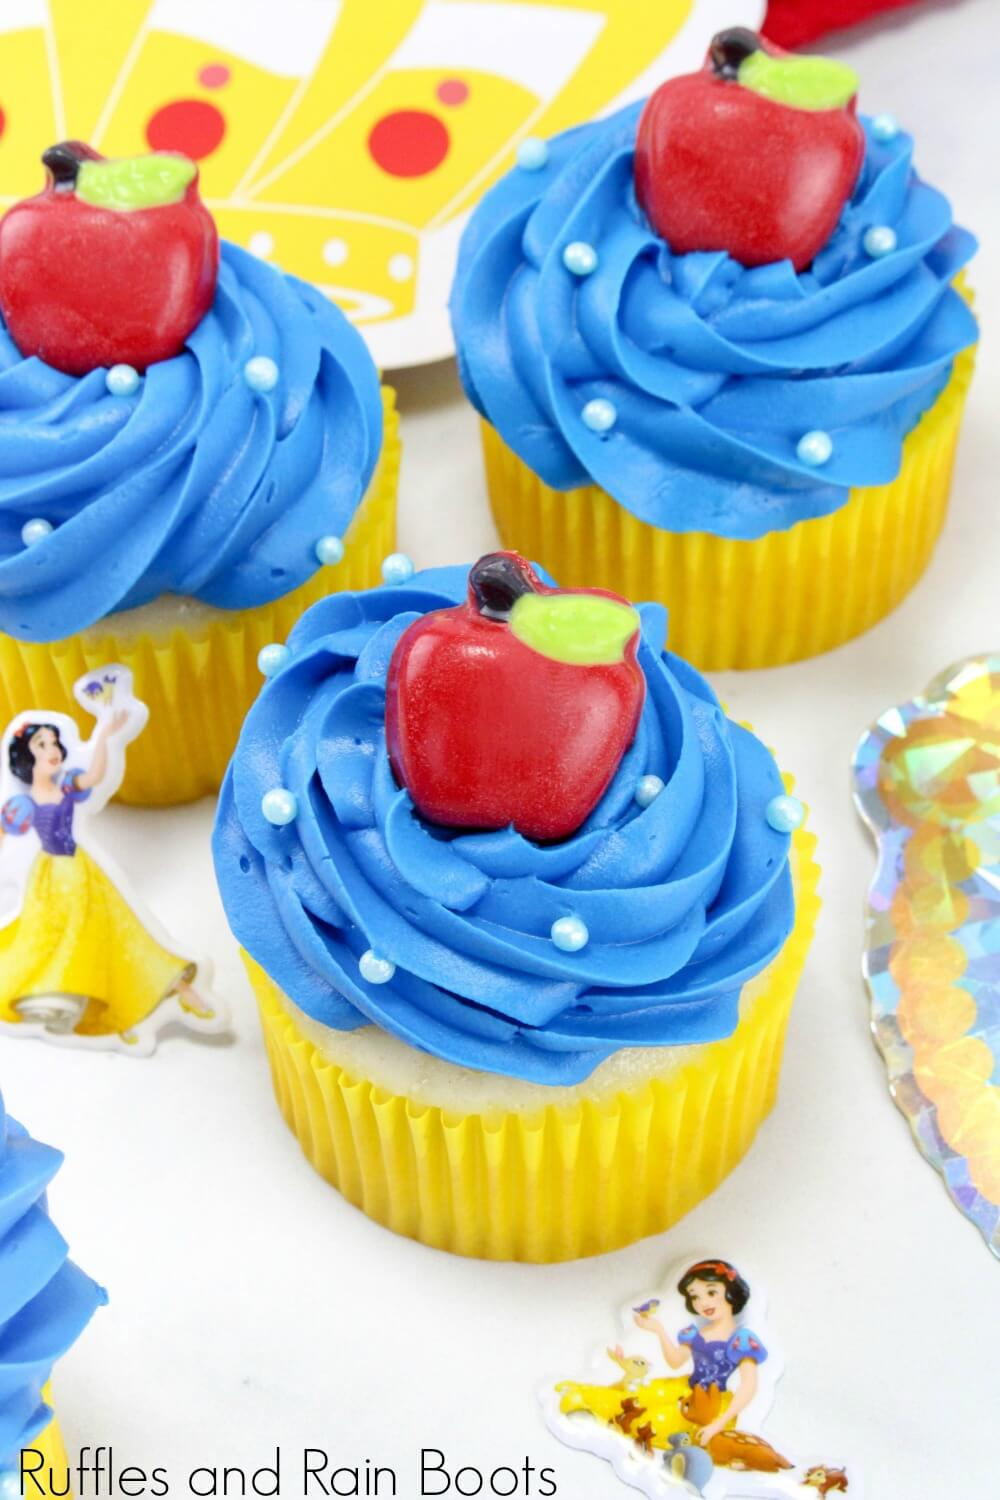 colorful Snow White cupcakes for a princess party idea